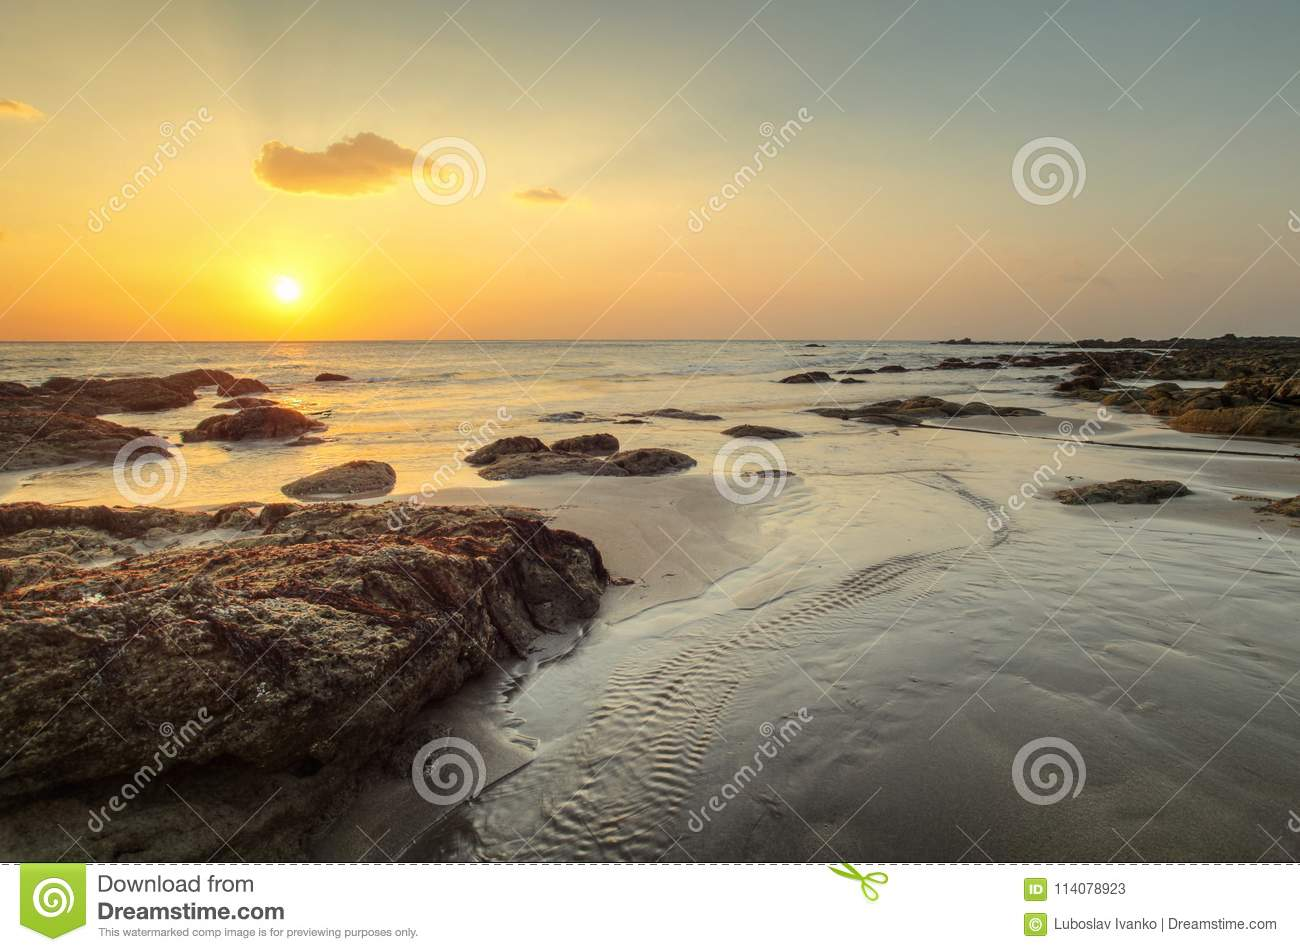 Beach in golden sunset light during low tide showing stream of w